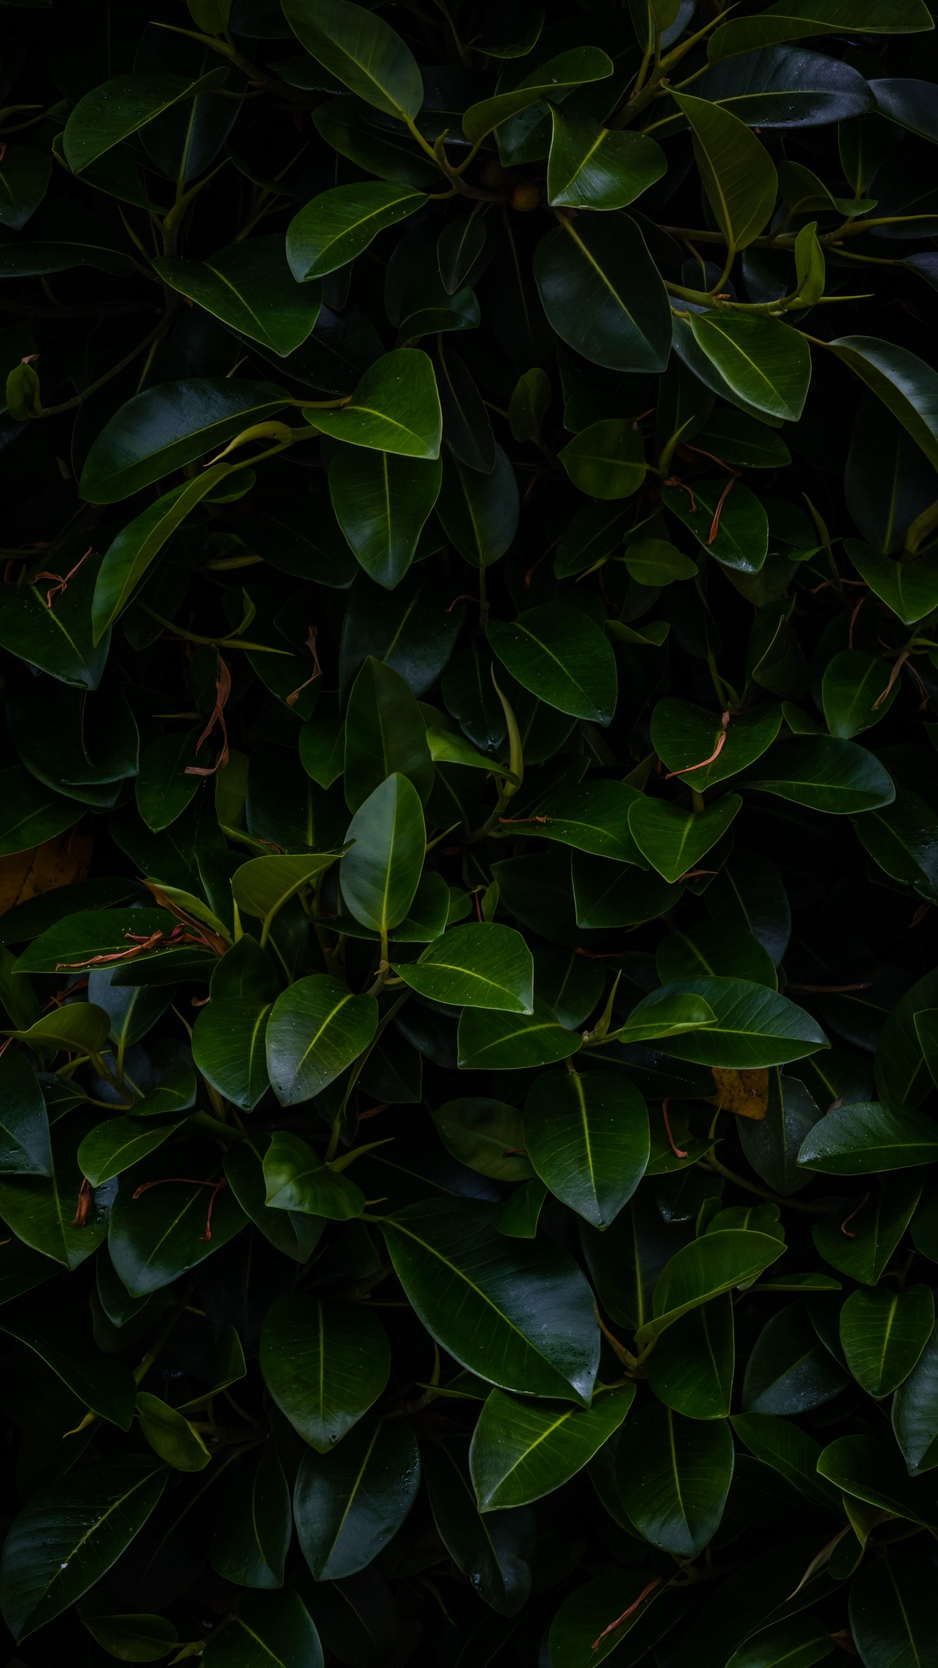 Wallpaper Leaves Plant Green Dark Branches Green Leaves 4k Background 938x1668 Wallpaper Teahub Io